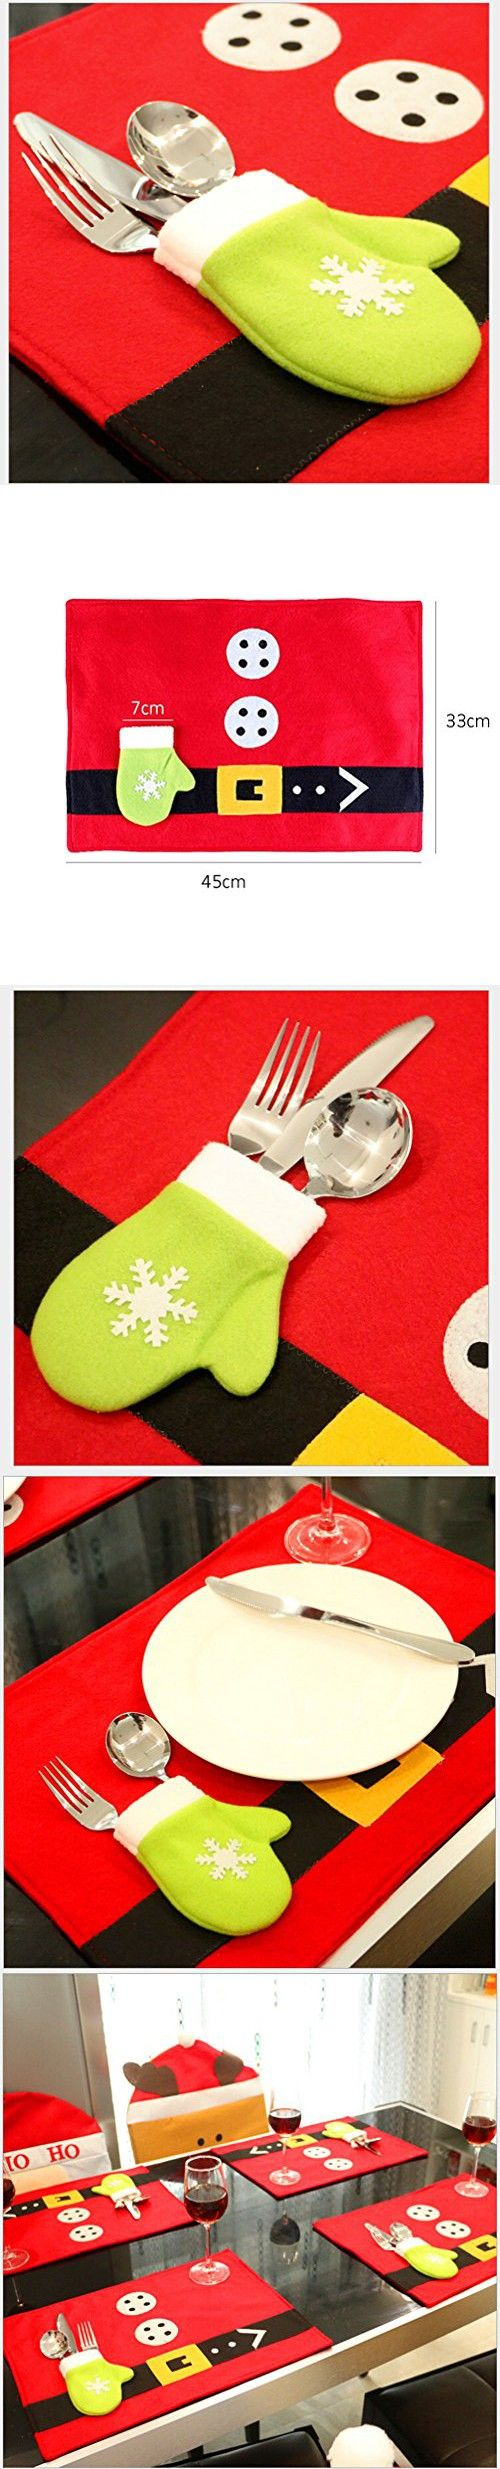 Table Mat,Homecube Christmas Snowmen and Elk Table Mats Placemats Napkins Decor Cover for Kitchen Holiday Party Home,Pack of 4